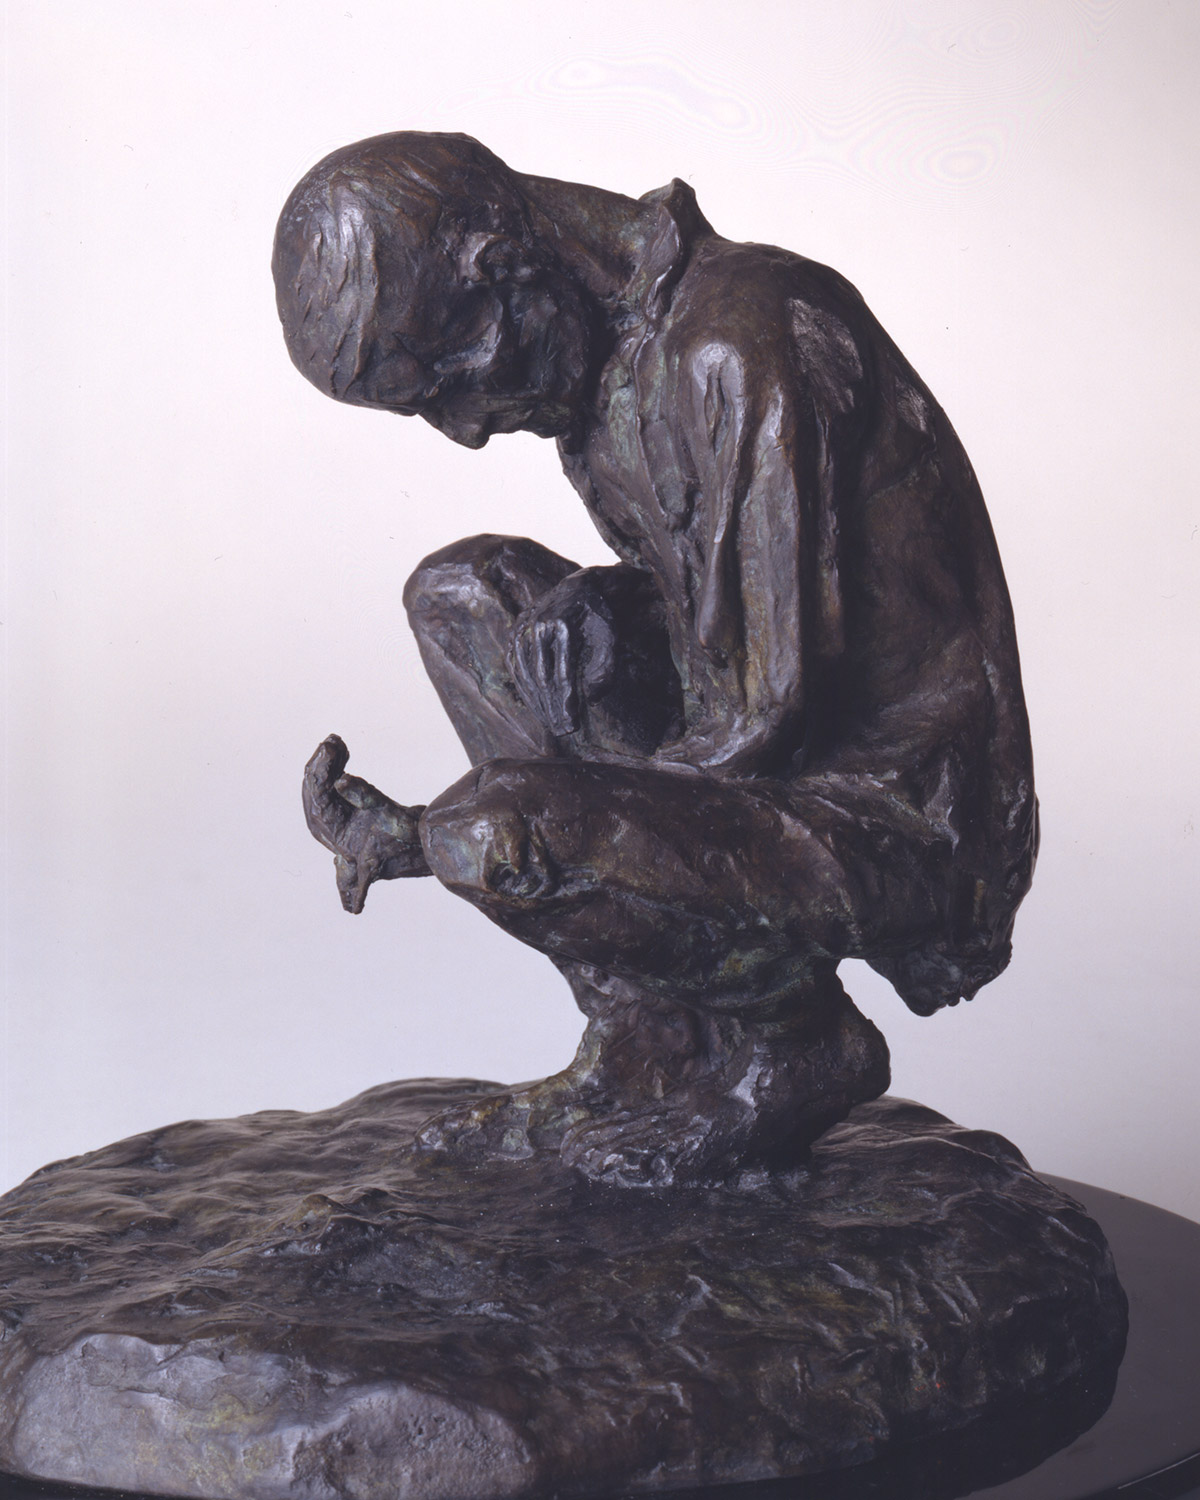 Man Sifting through Soil, Margaret Lyster Chamberlain